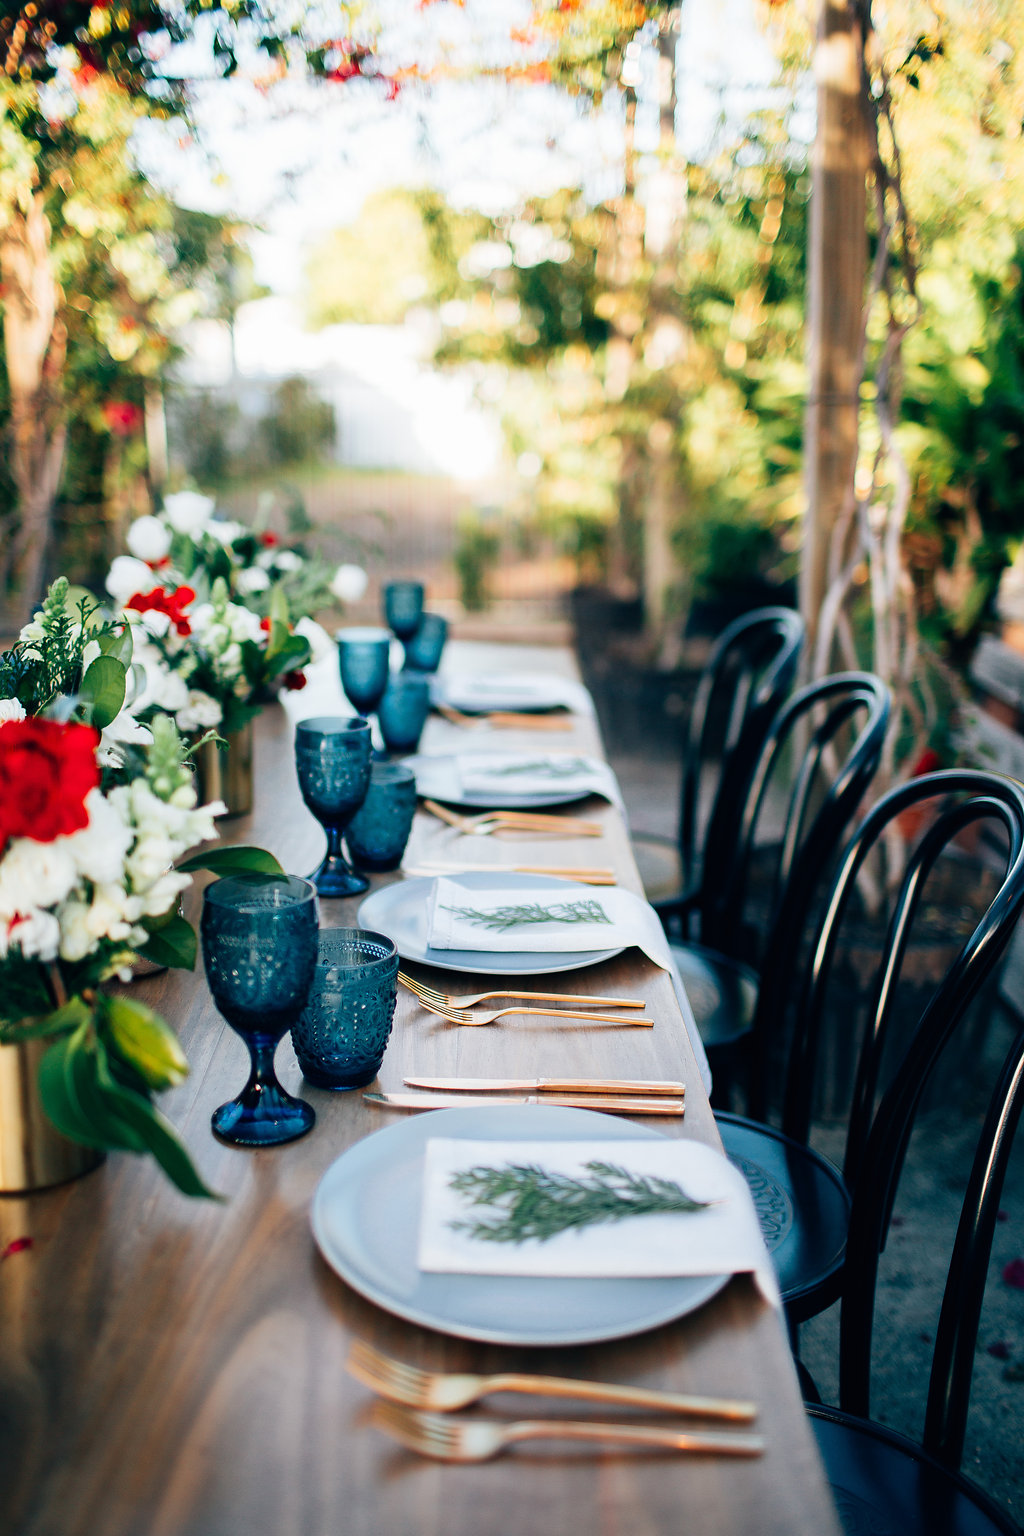 Hampton Event Hire - Wedding and Event Hire | Christmas Table Styling Inspiration at Osteria Casuarina | Blue Glassware | Gold Cutlery | www.hamptoneventhire.com | Photo by Figtree Pictures